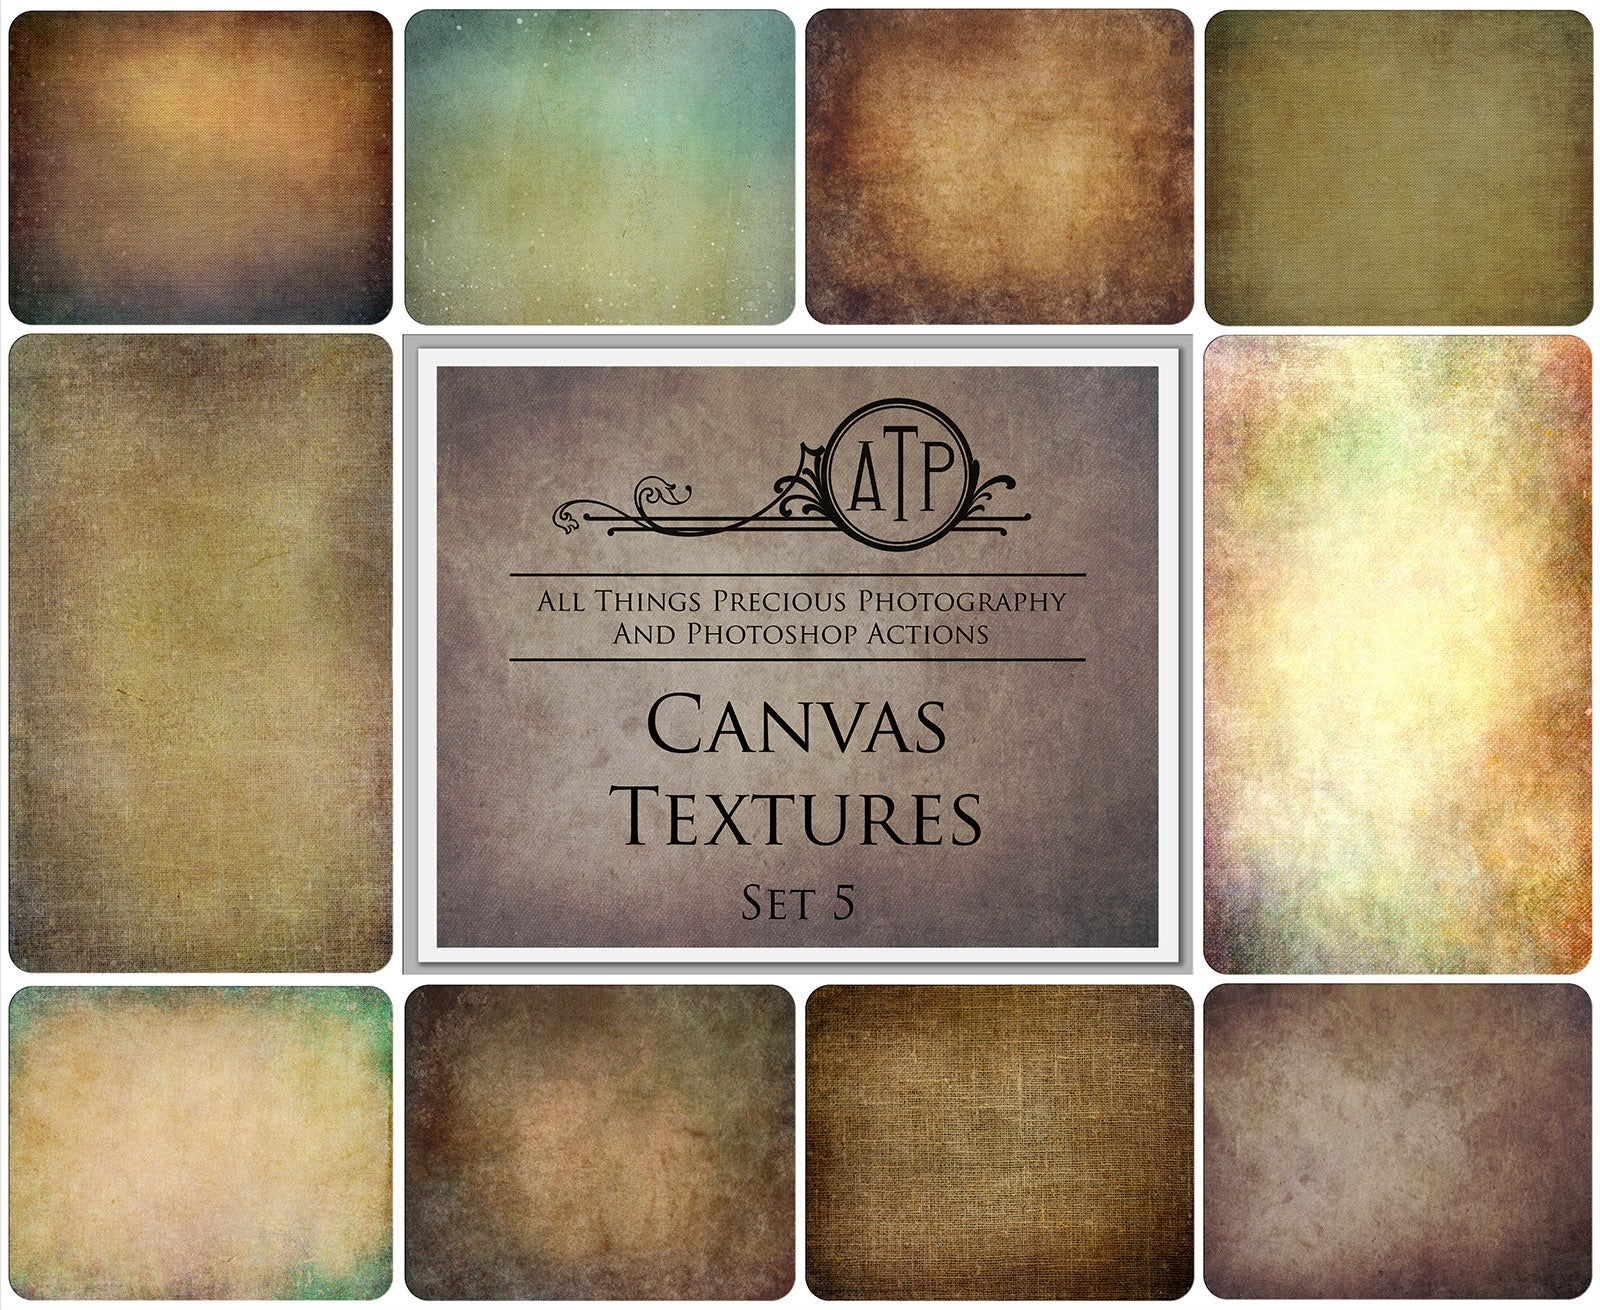 10 Fine Art TEXTURES - CANVAS Set 5